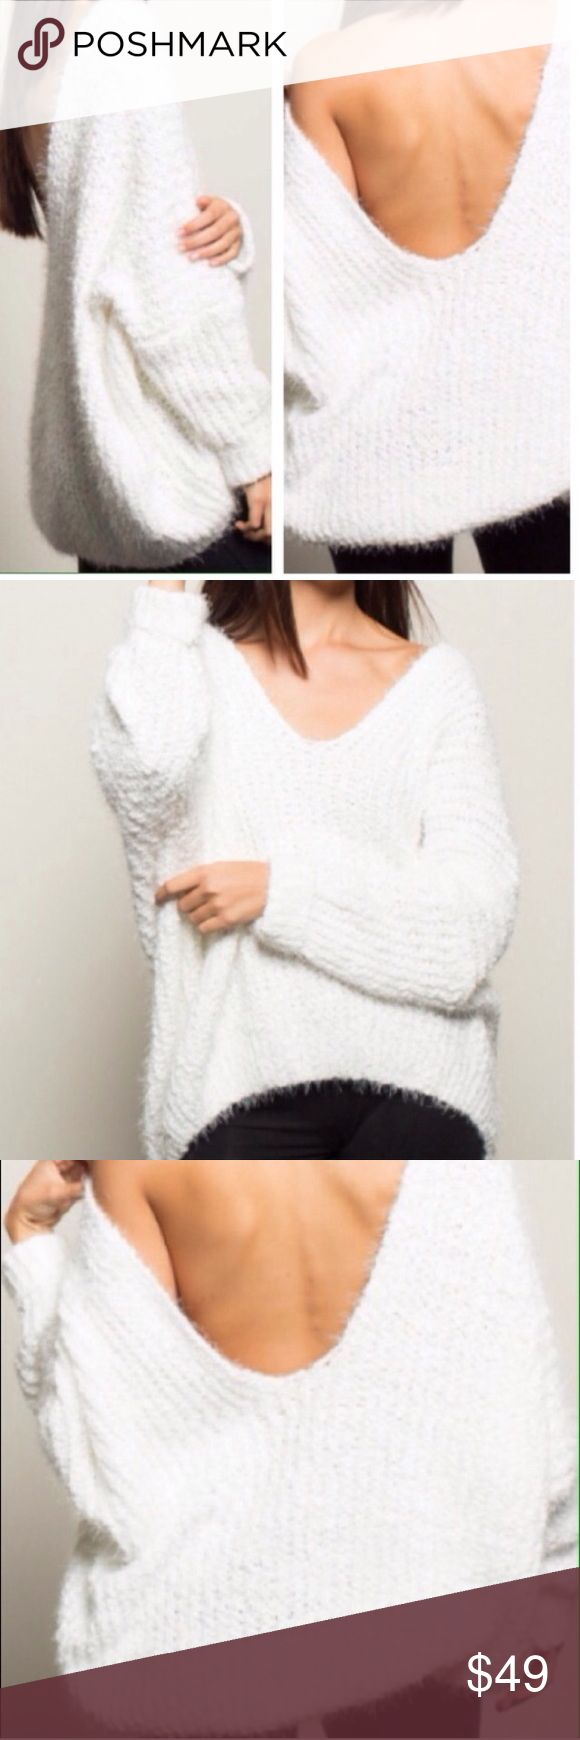 """NWT Winter White Oversized Open Back Sweater NWT.  Amazingly versatile eyelash knit sweater.  It can be worn as an open back Hi-low, front deep v-neck, or as a double v-neck.  Each way looks sexy cool with a strappy bra.  Oversized, super soft, drop shoulder.  70% Cotton 30% Acrylic. Approx measurements laying flat: chest 31"""", length 22"""". Extra pics at bottom of my closet.  NO TRADES❗️❗️❗️ Sweaters"""